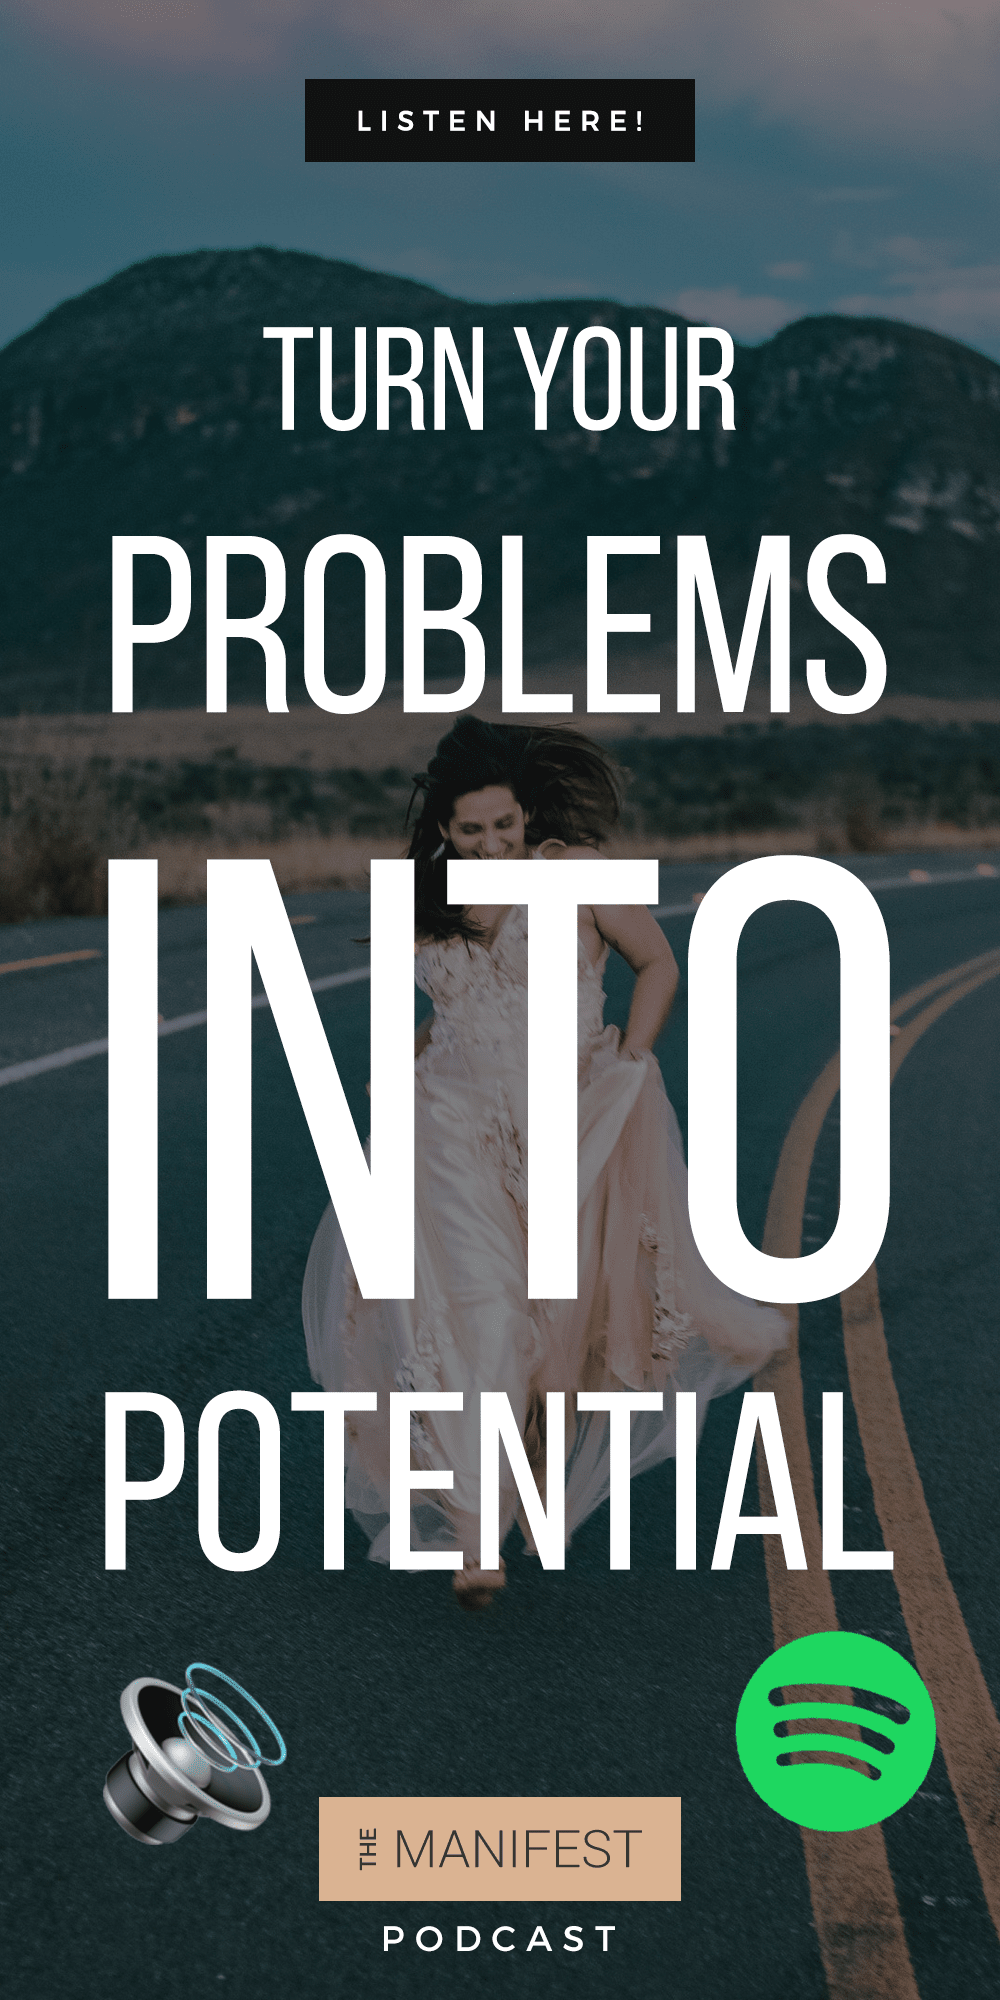 woman running down road with text Episode 22: Turning Your Problems Into Your Potential